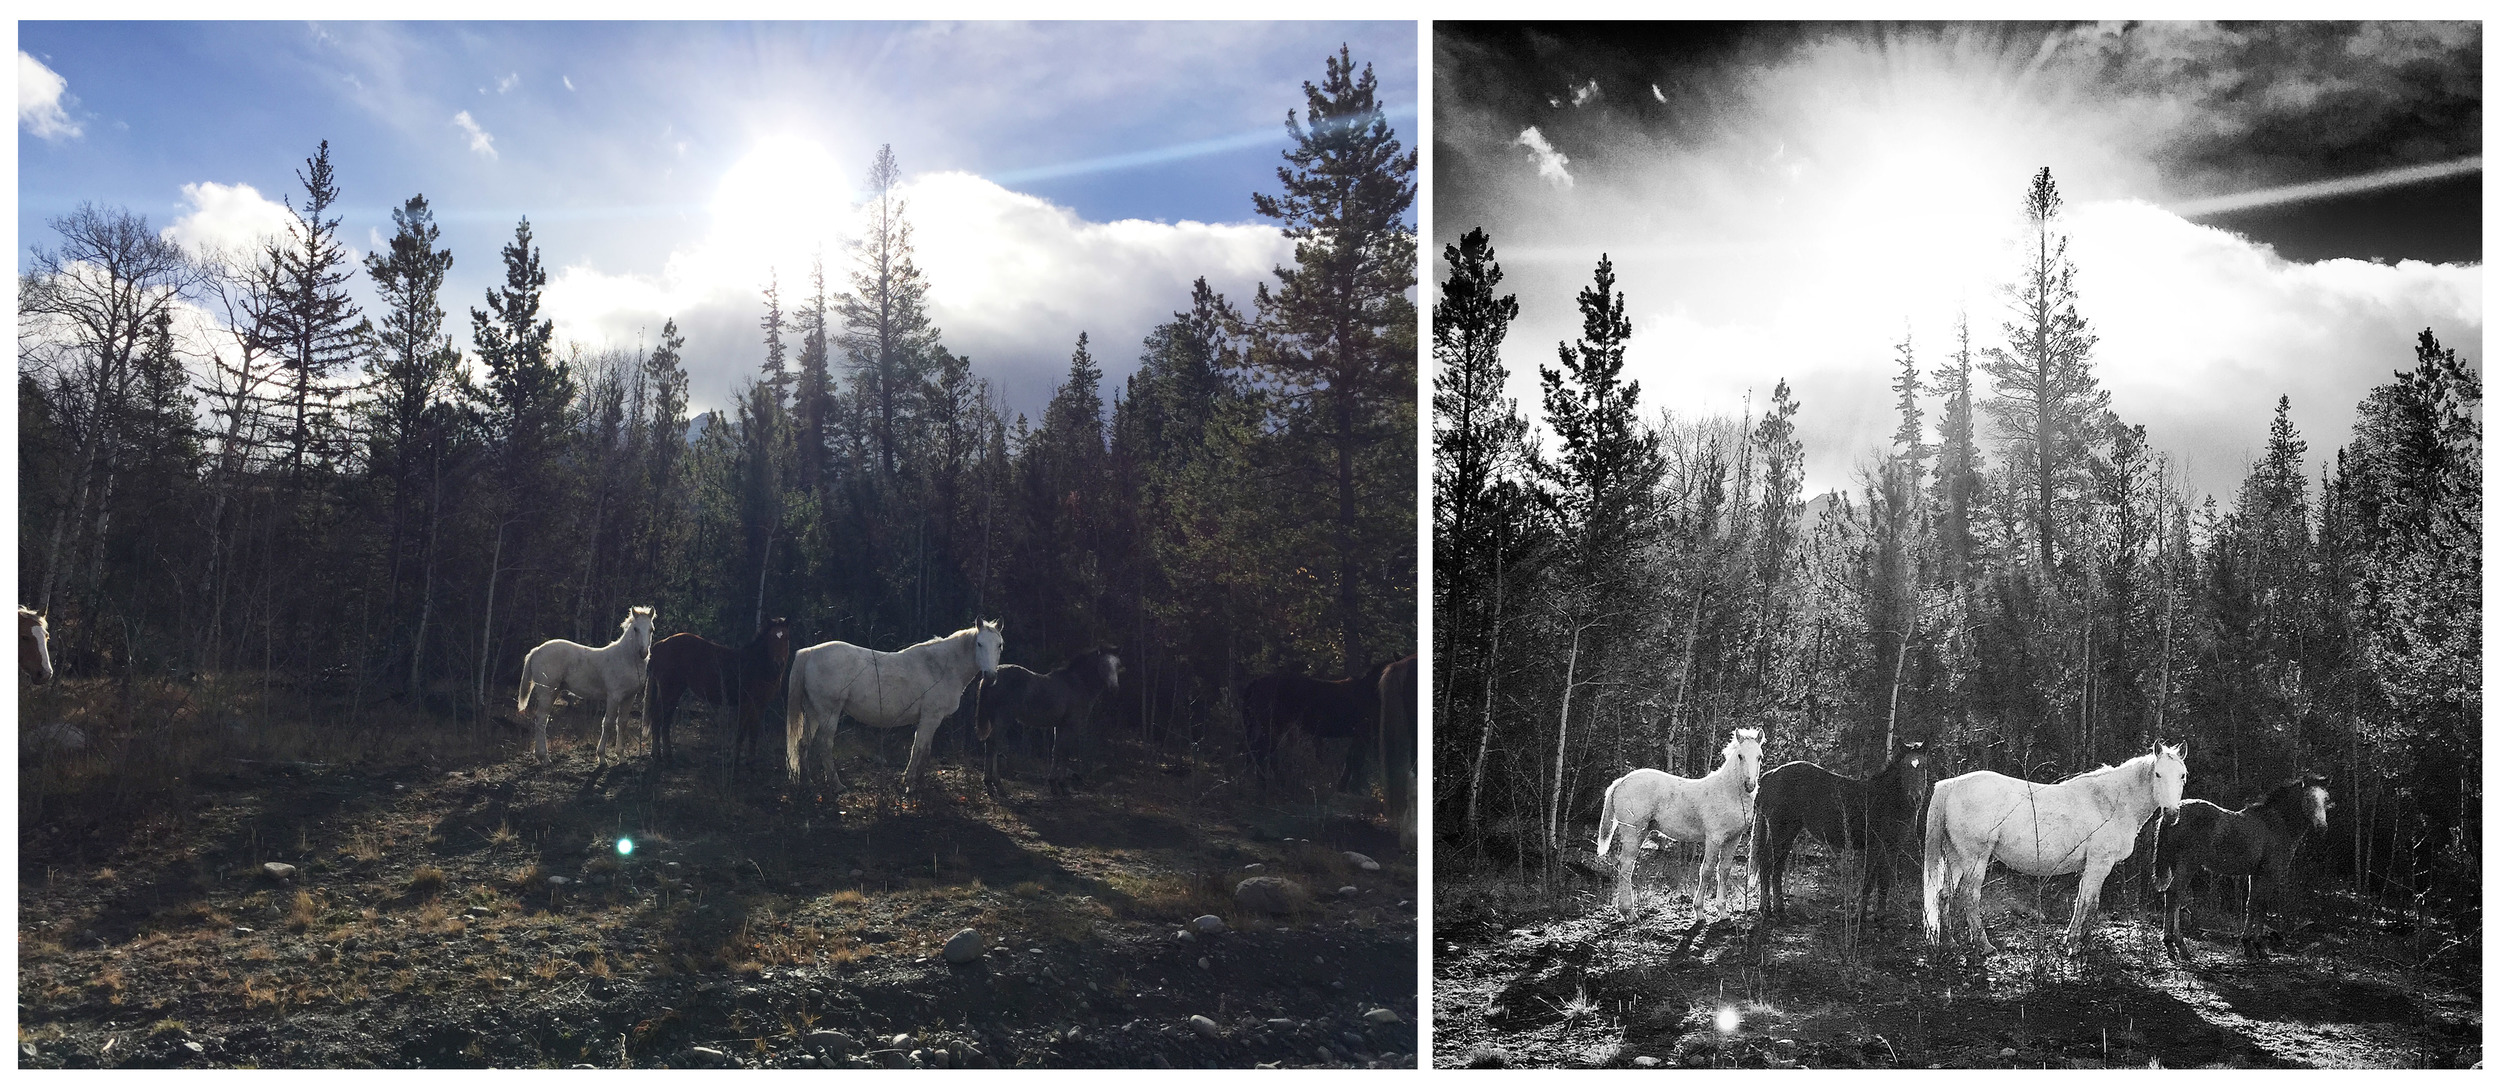 This photo of wild horses in the Nemiah Valley taken with an iPhone shows the photo before and after the photo was cropped and had Instagram filters applied. Follow John Lehmann on Instagram @JohnLehmann and the Globe and Mail @GlobeandMail